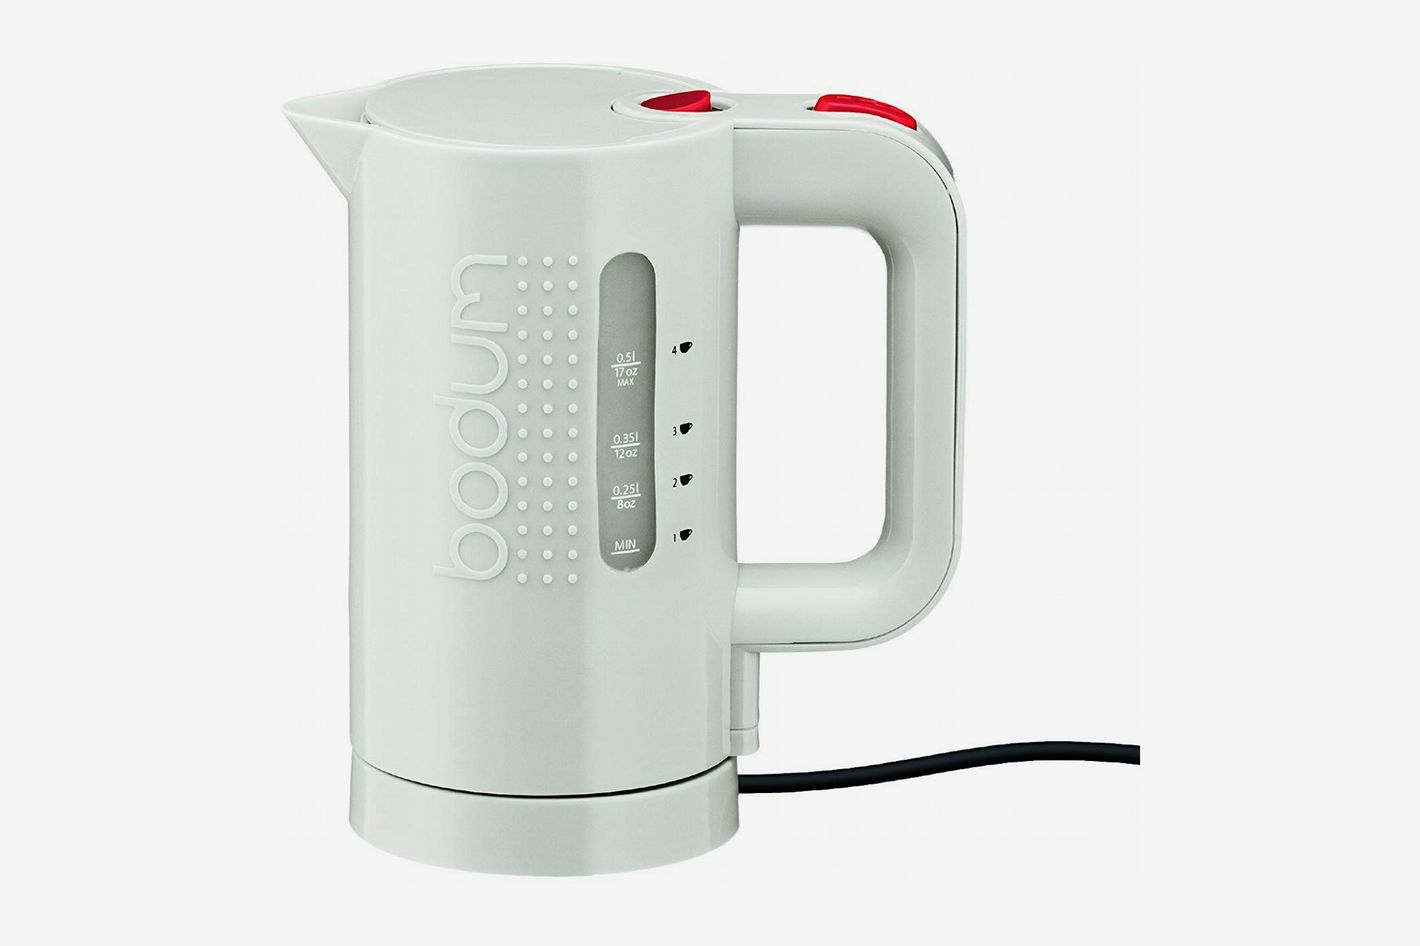 Bodum 17-Ounce Electric Water Kettle